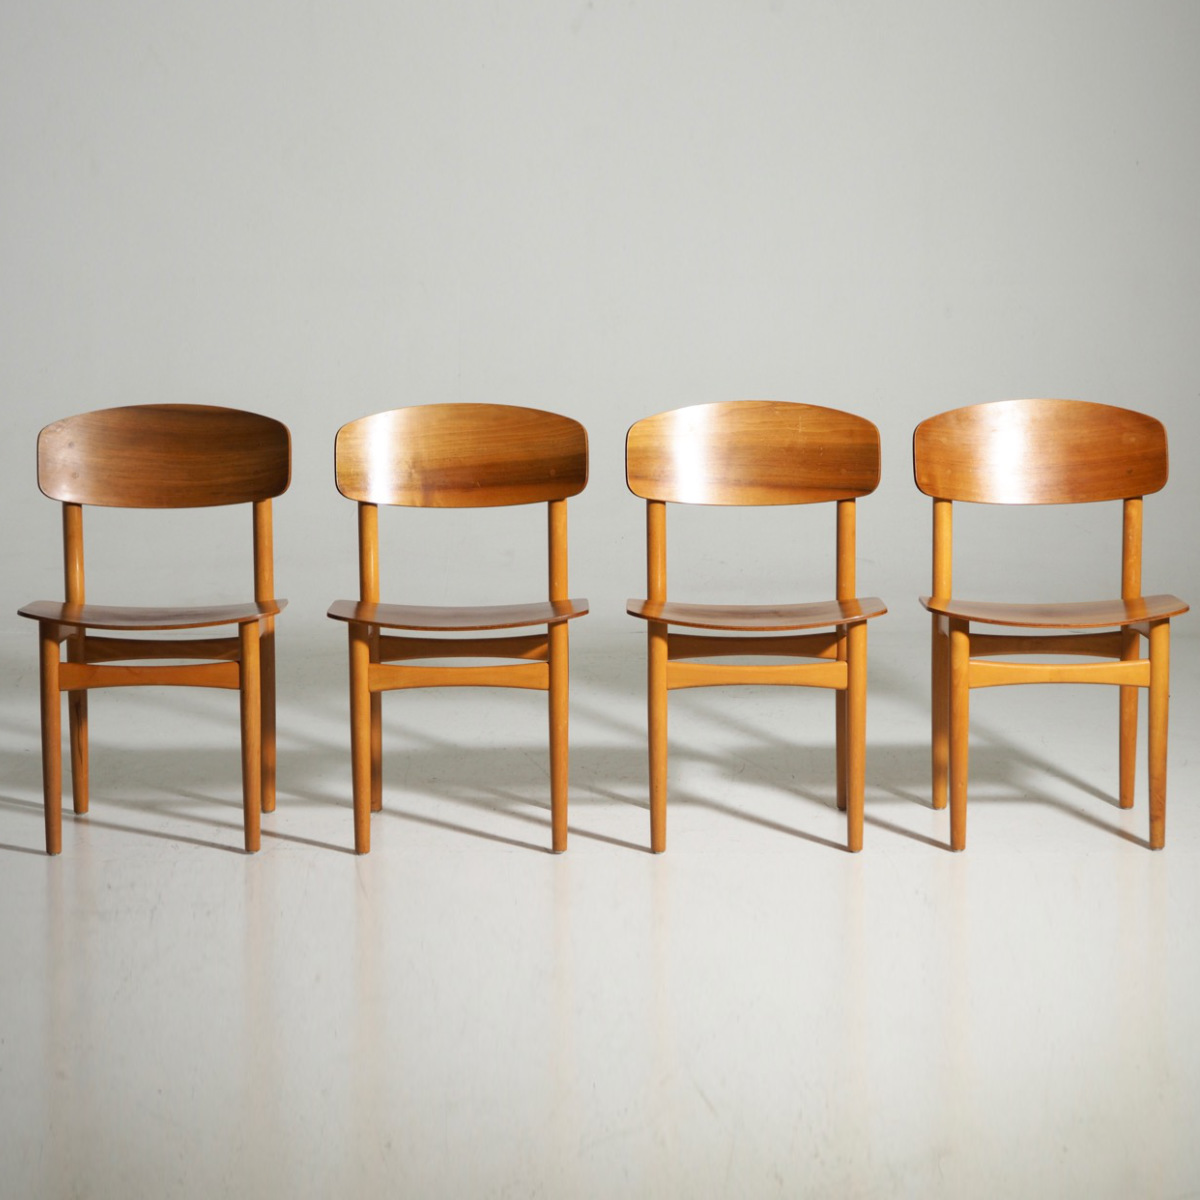 Børge Mogensen chairs in teak, 1960´s. - € 1.200